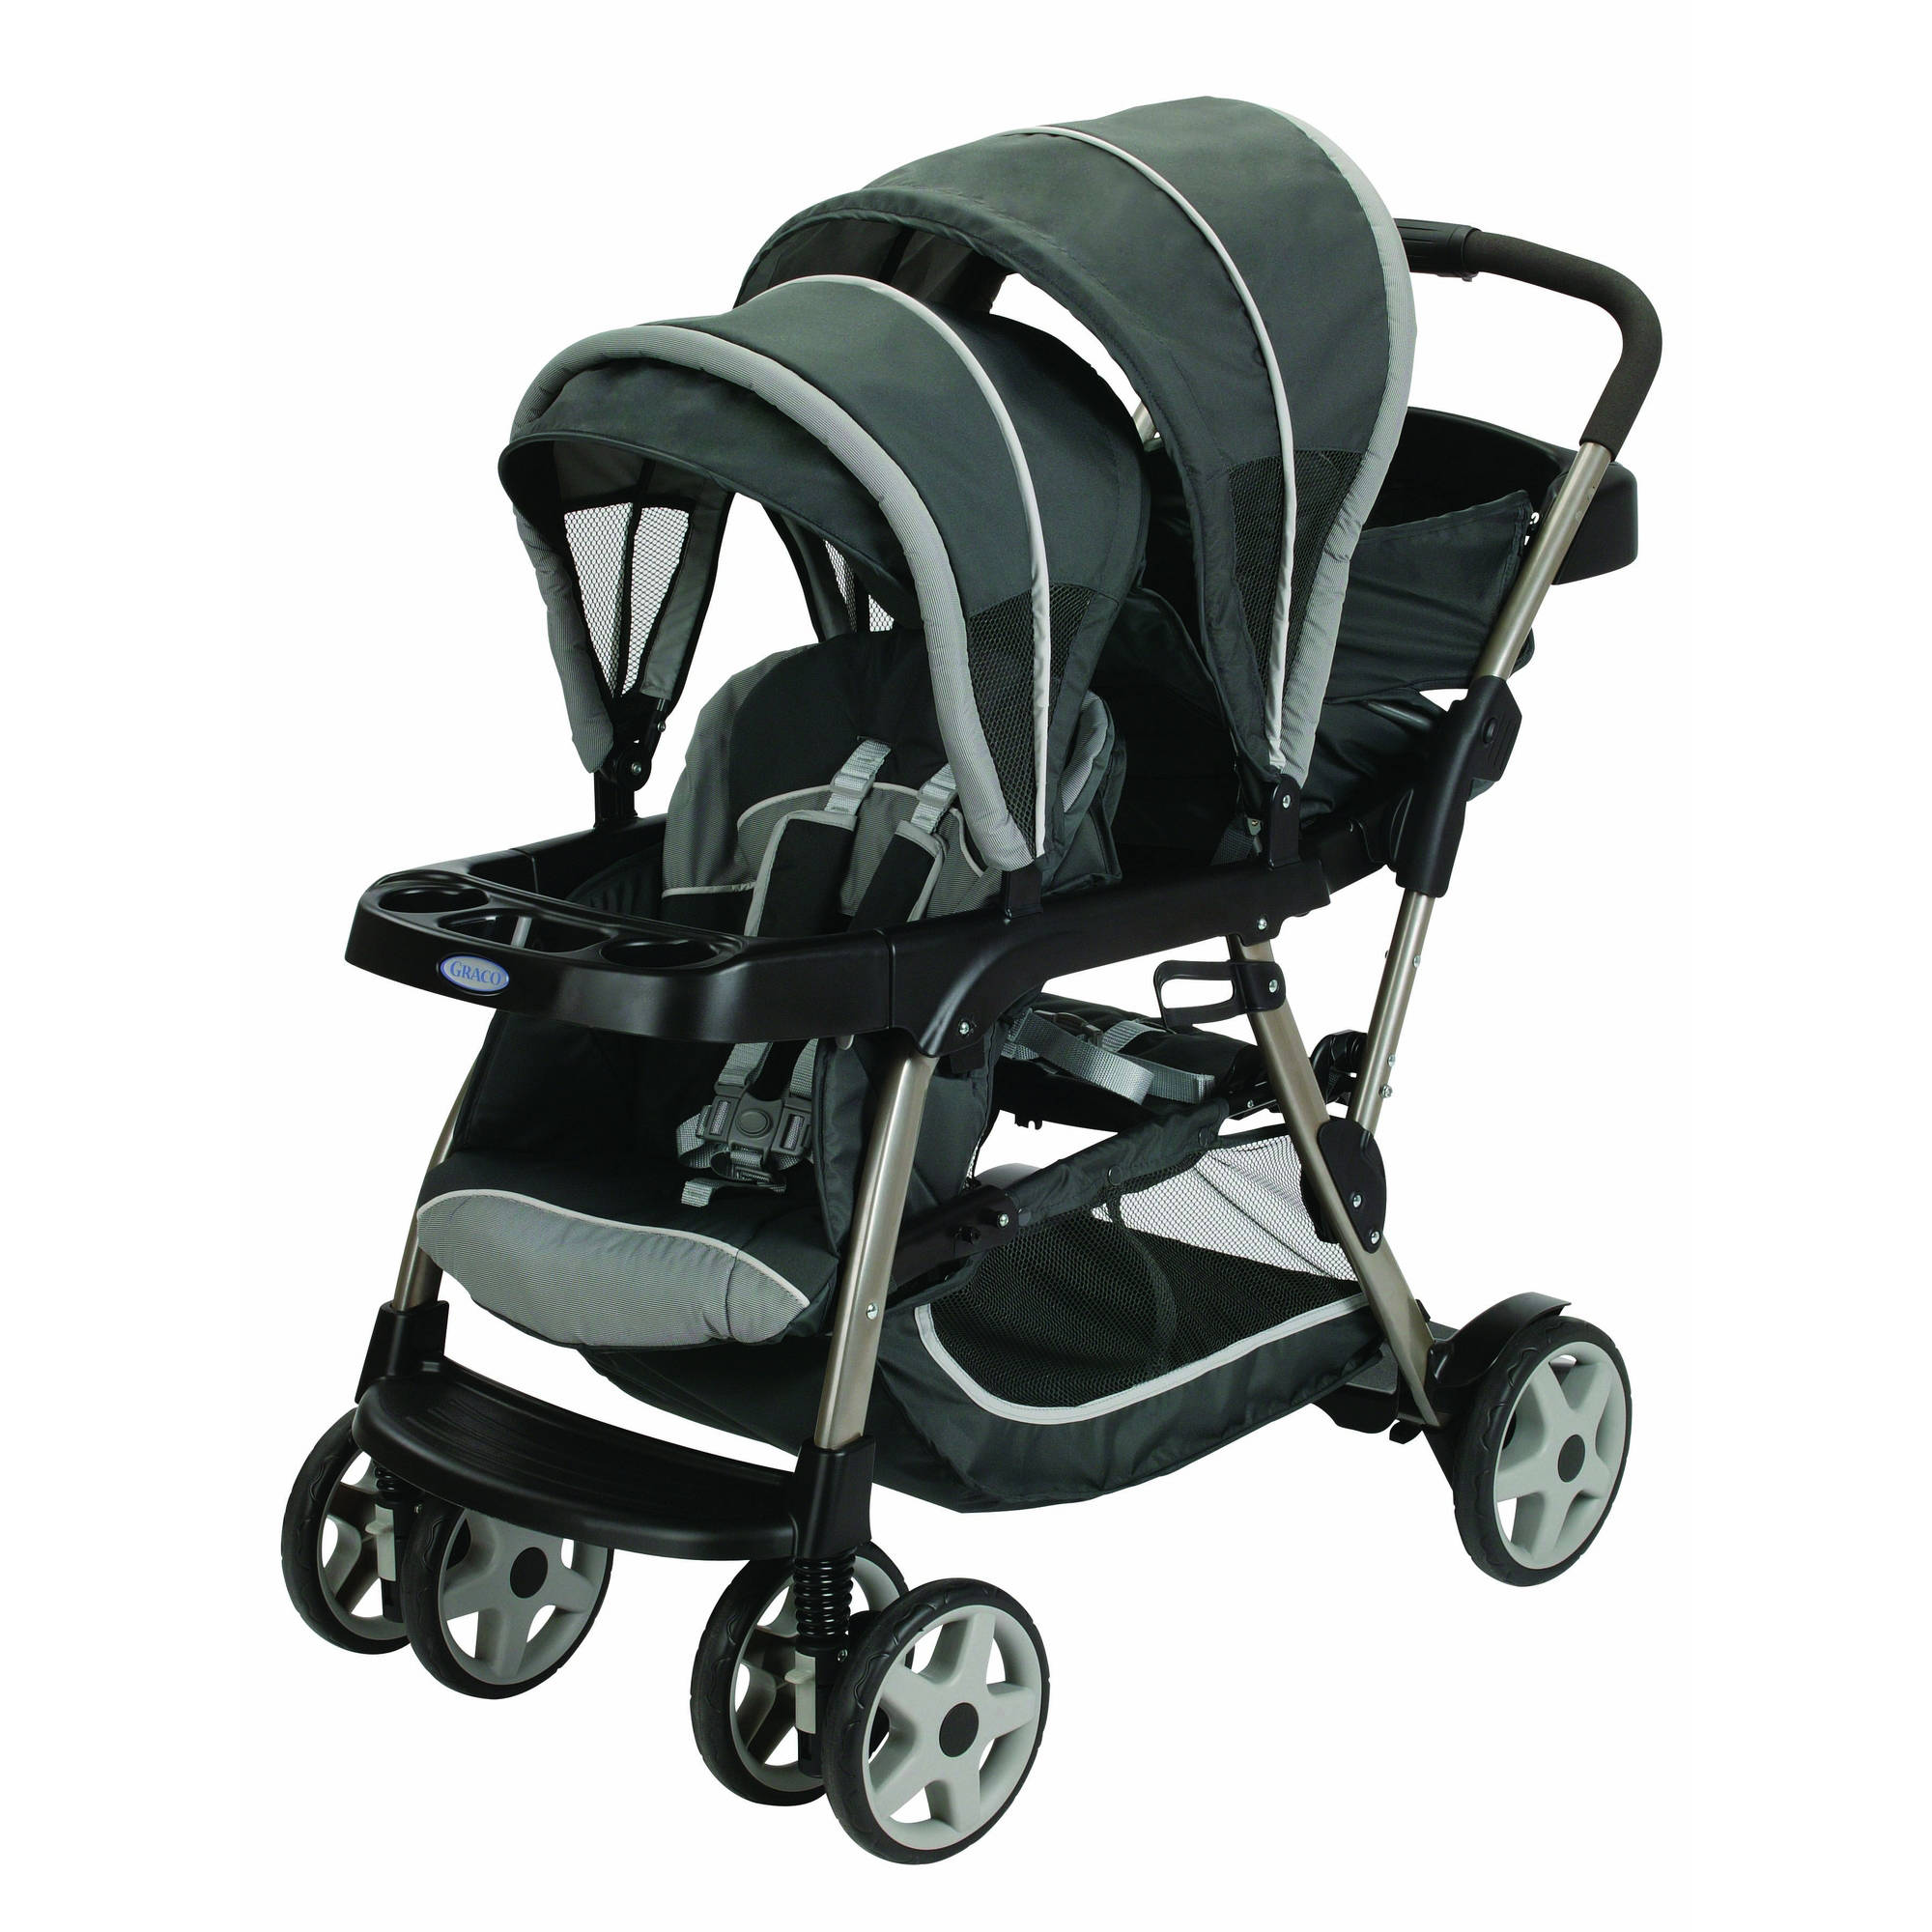 Graco Ready2Grow Click Connect LX Double Stroller, Glacier by Graco